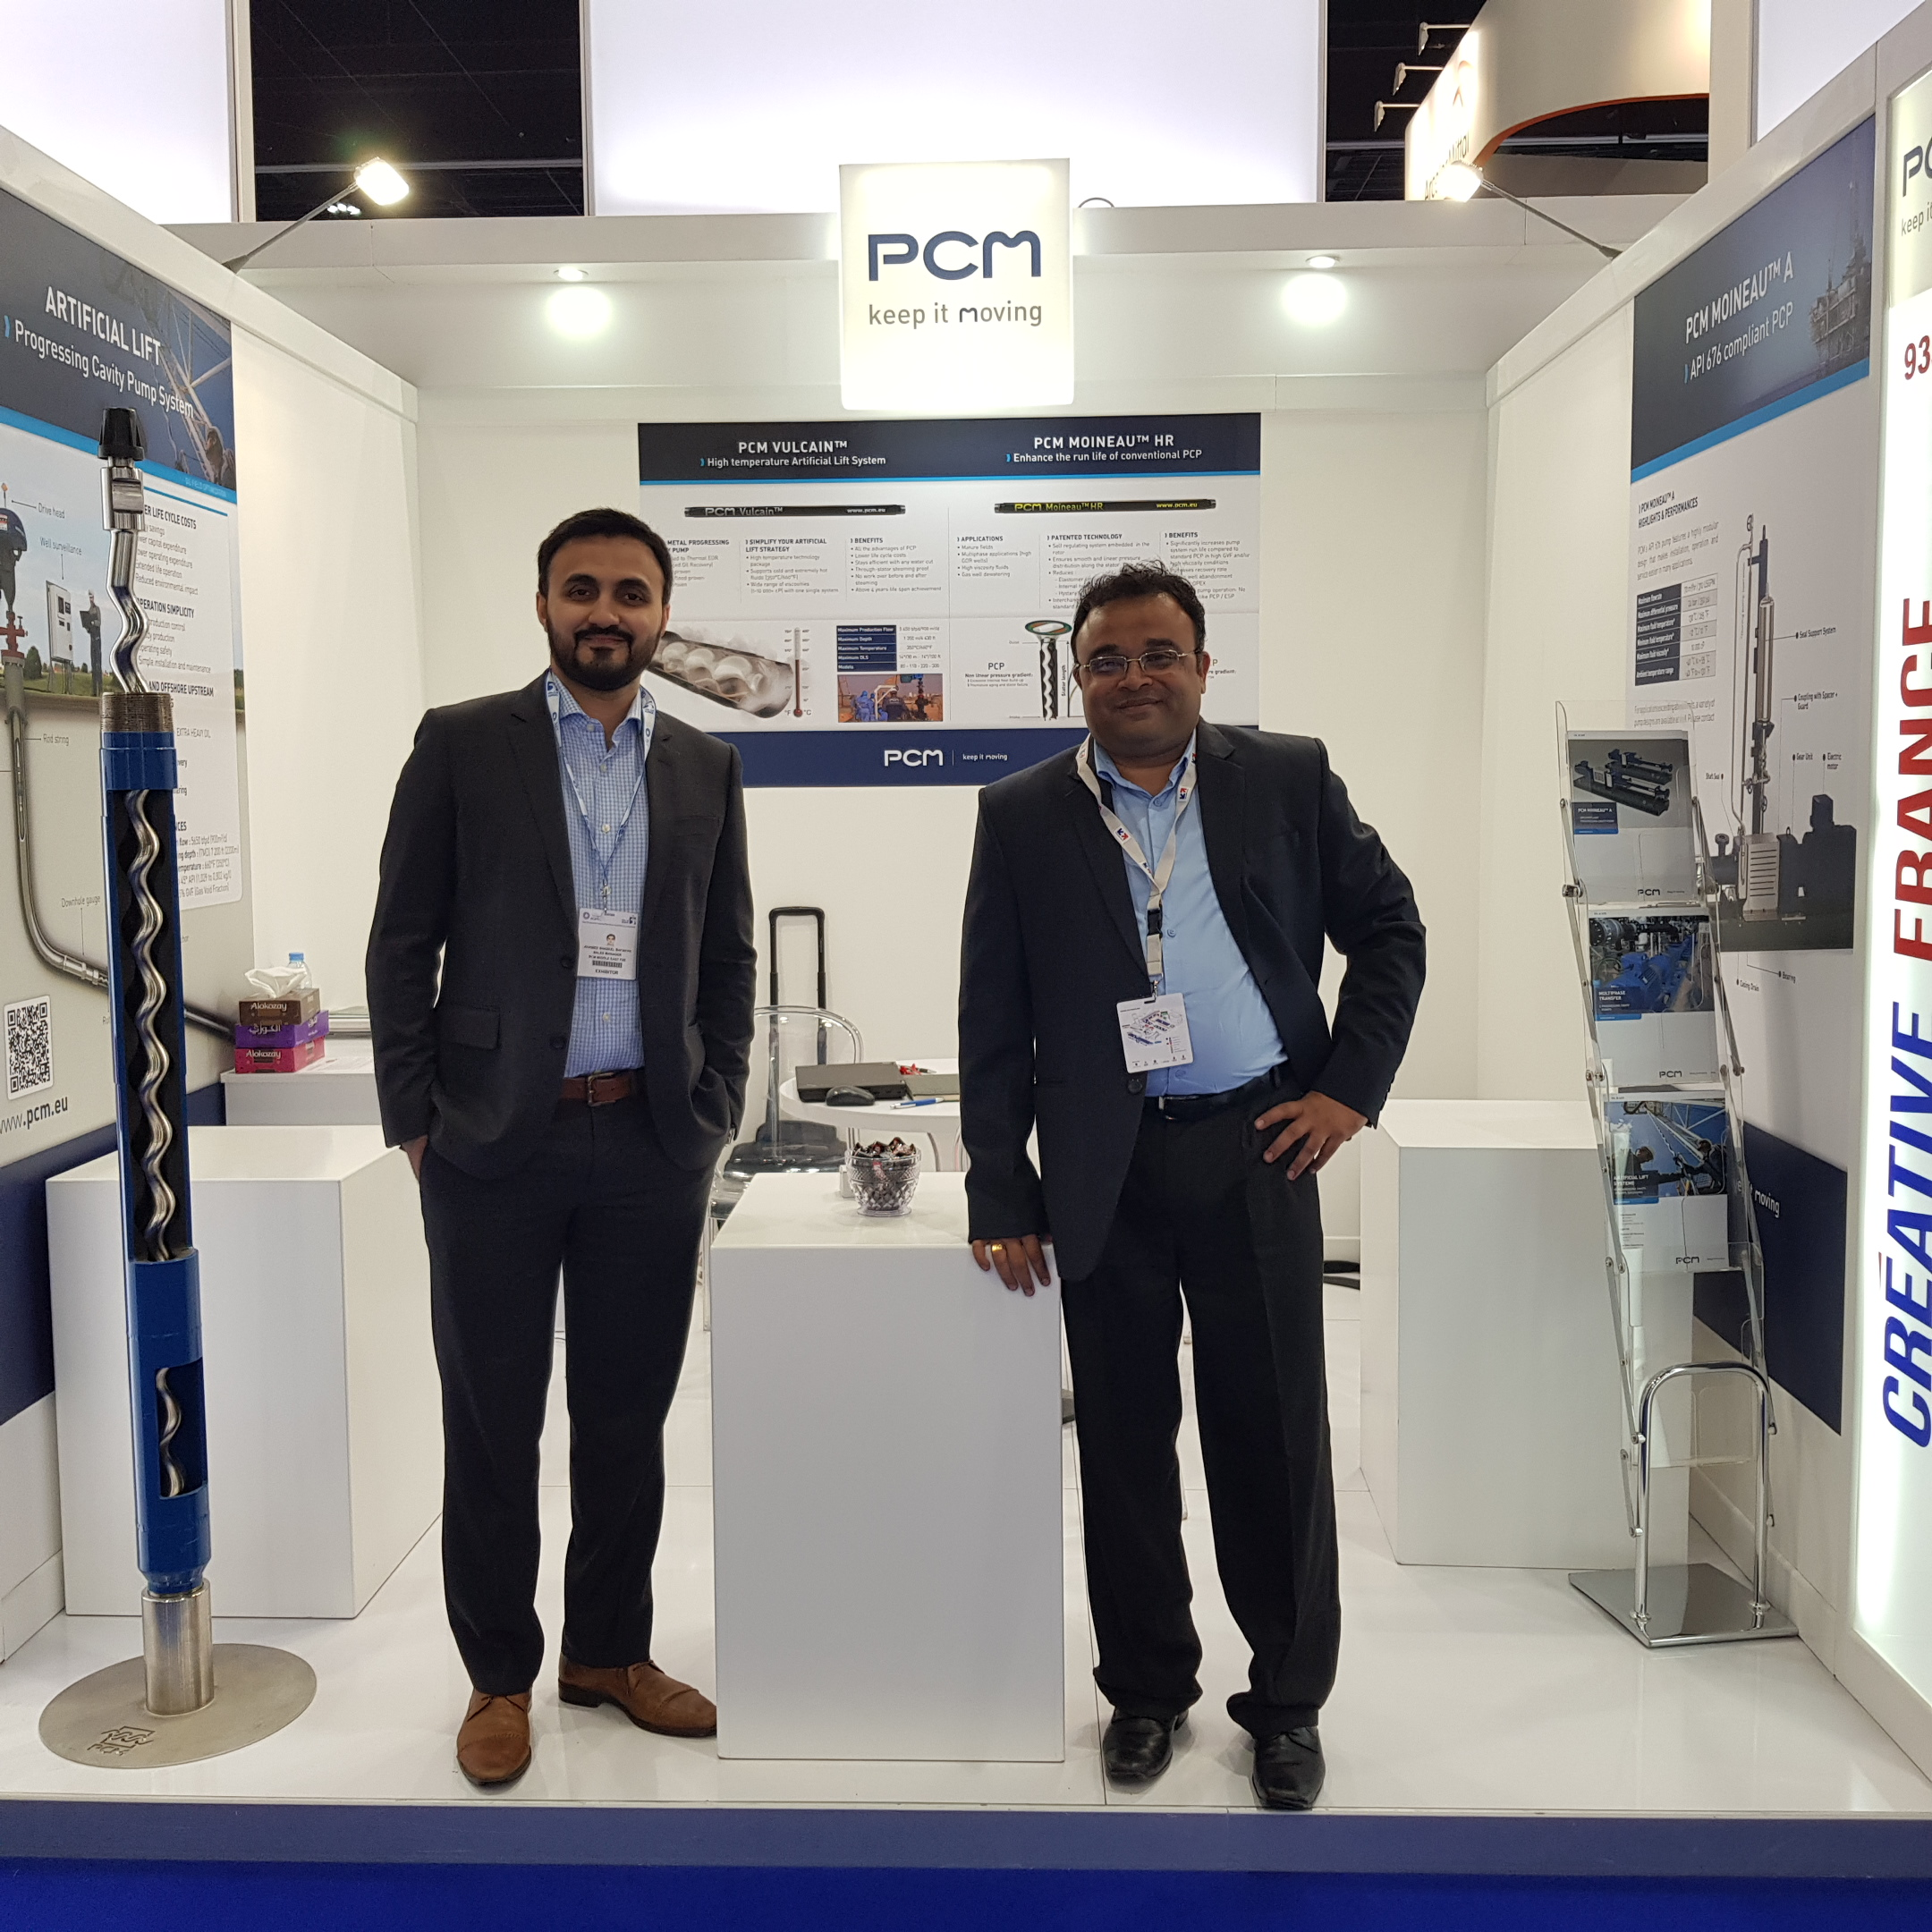 PCM exhibiting at Adipec (Abu Dhabi)